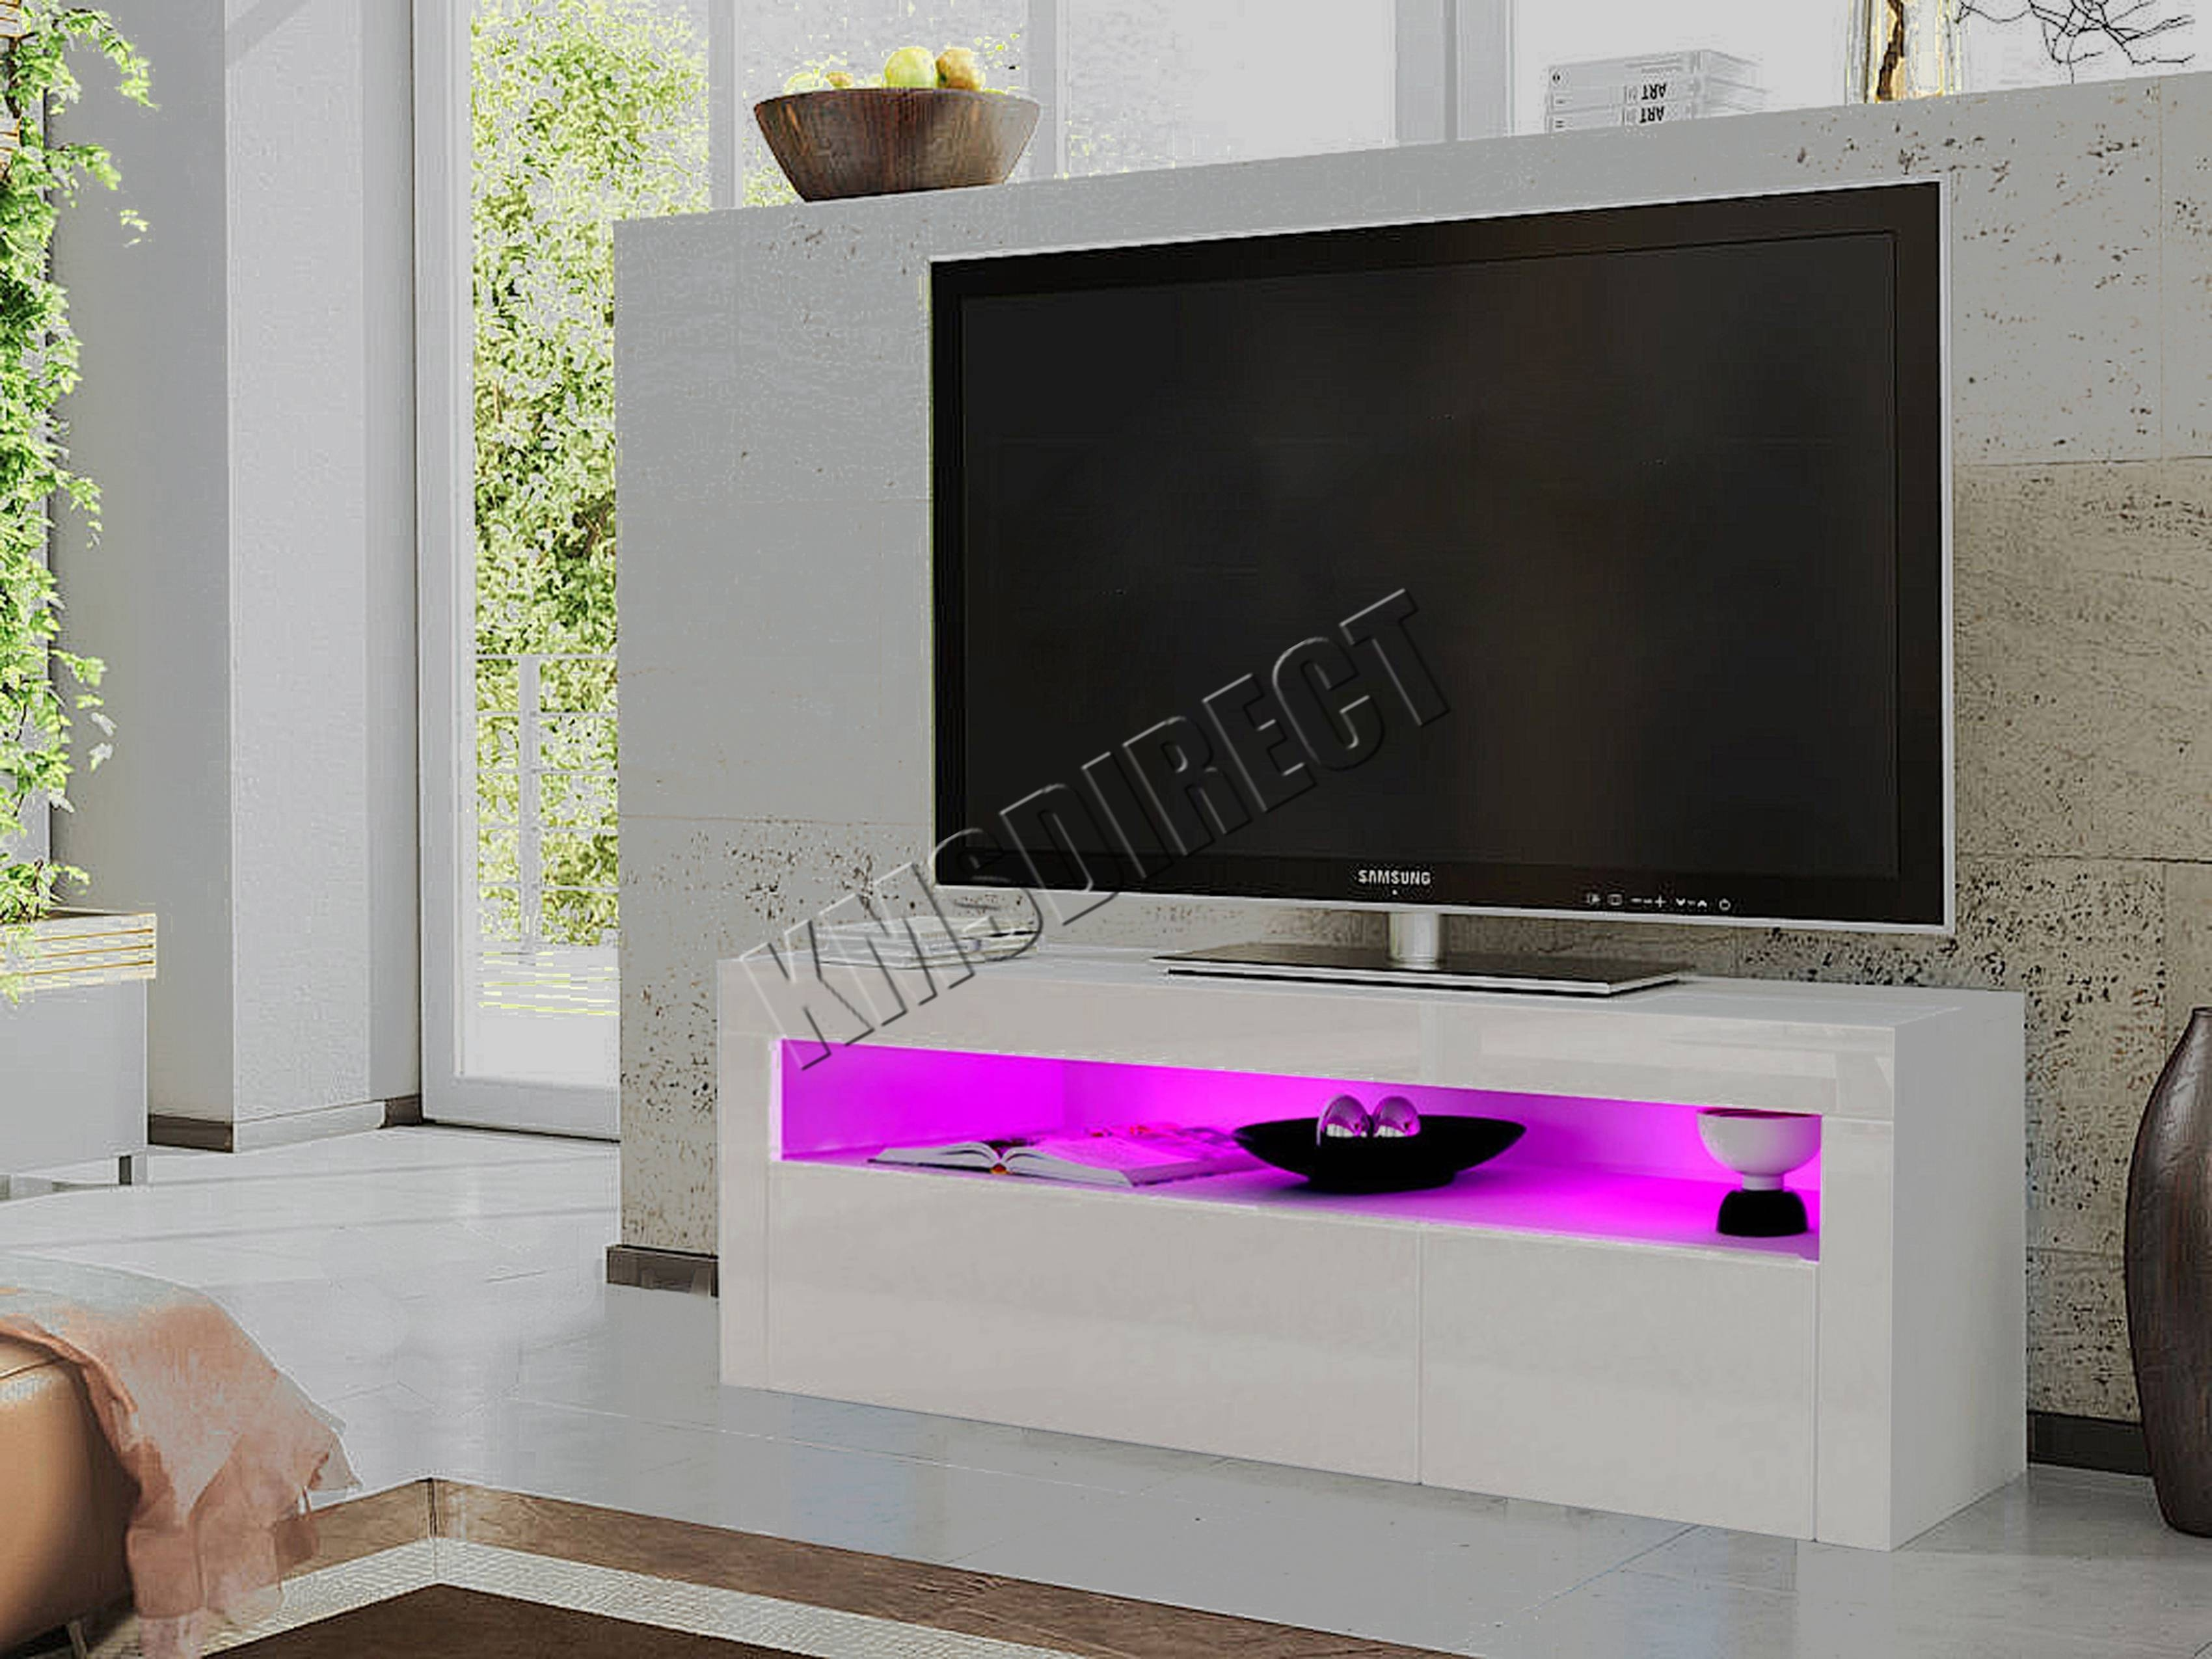 Foxhunter Modern High Gloss Matt Tv Cabinet Unit Stand White Rgb throughout High Gloss White Tv Cabinets (Image 6 of 15)